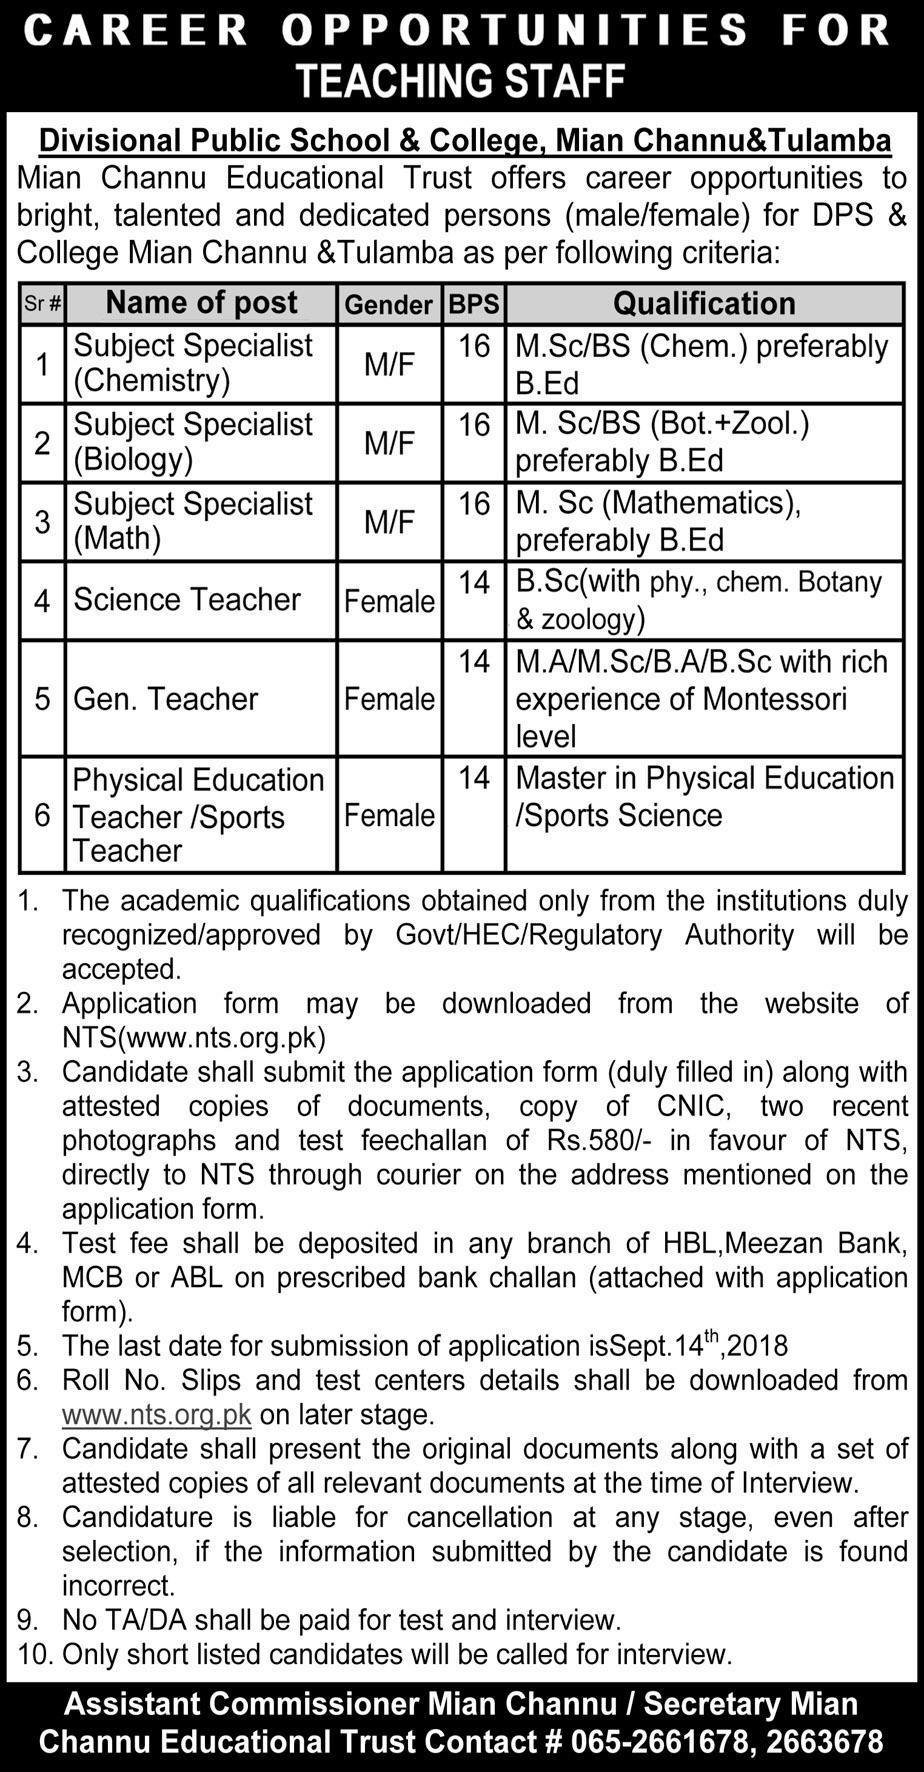 DPS College Mian Channu Tulamba Jobs NTS Application Forms 2018